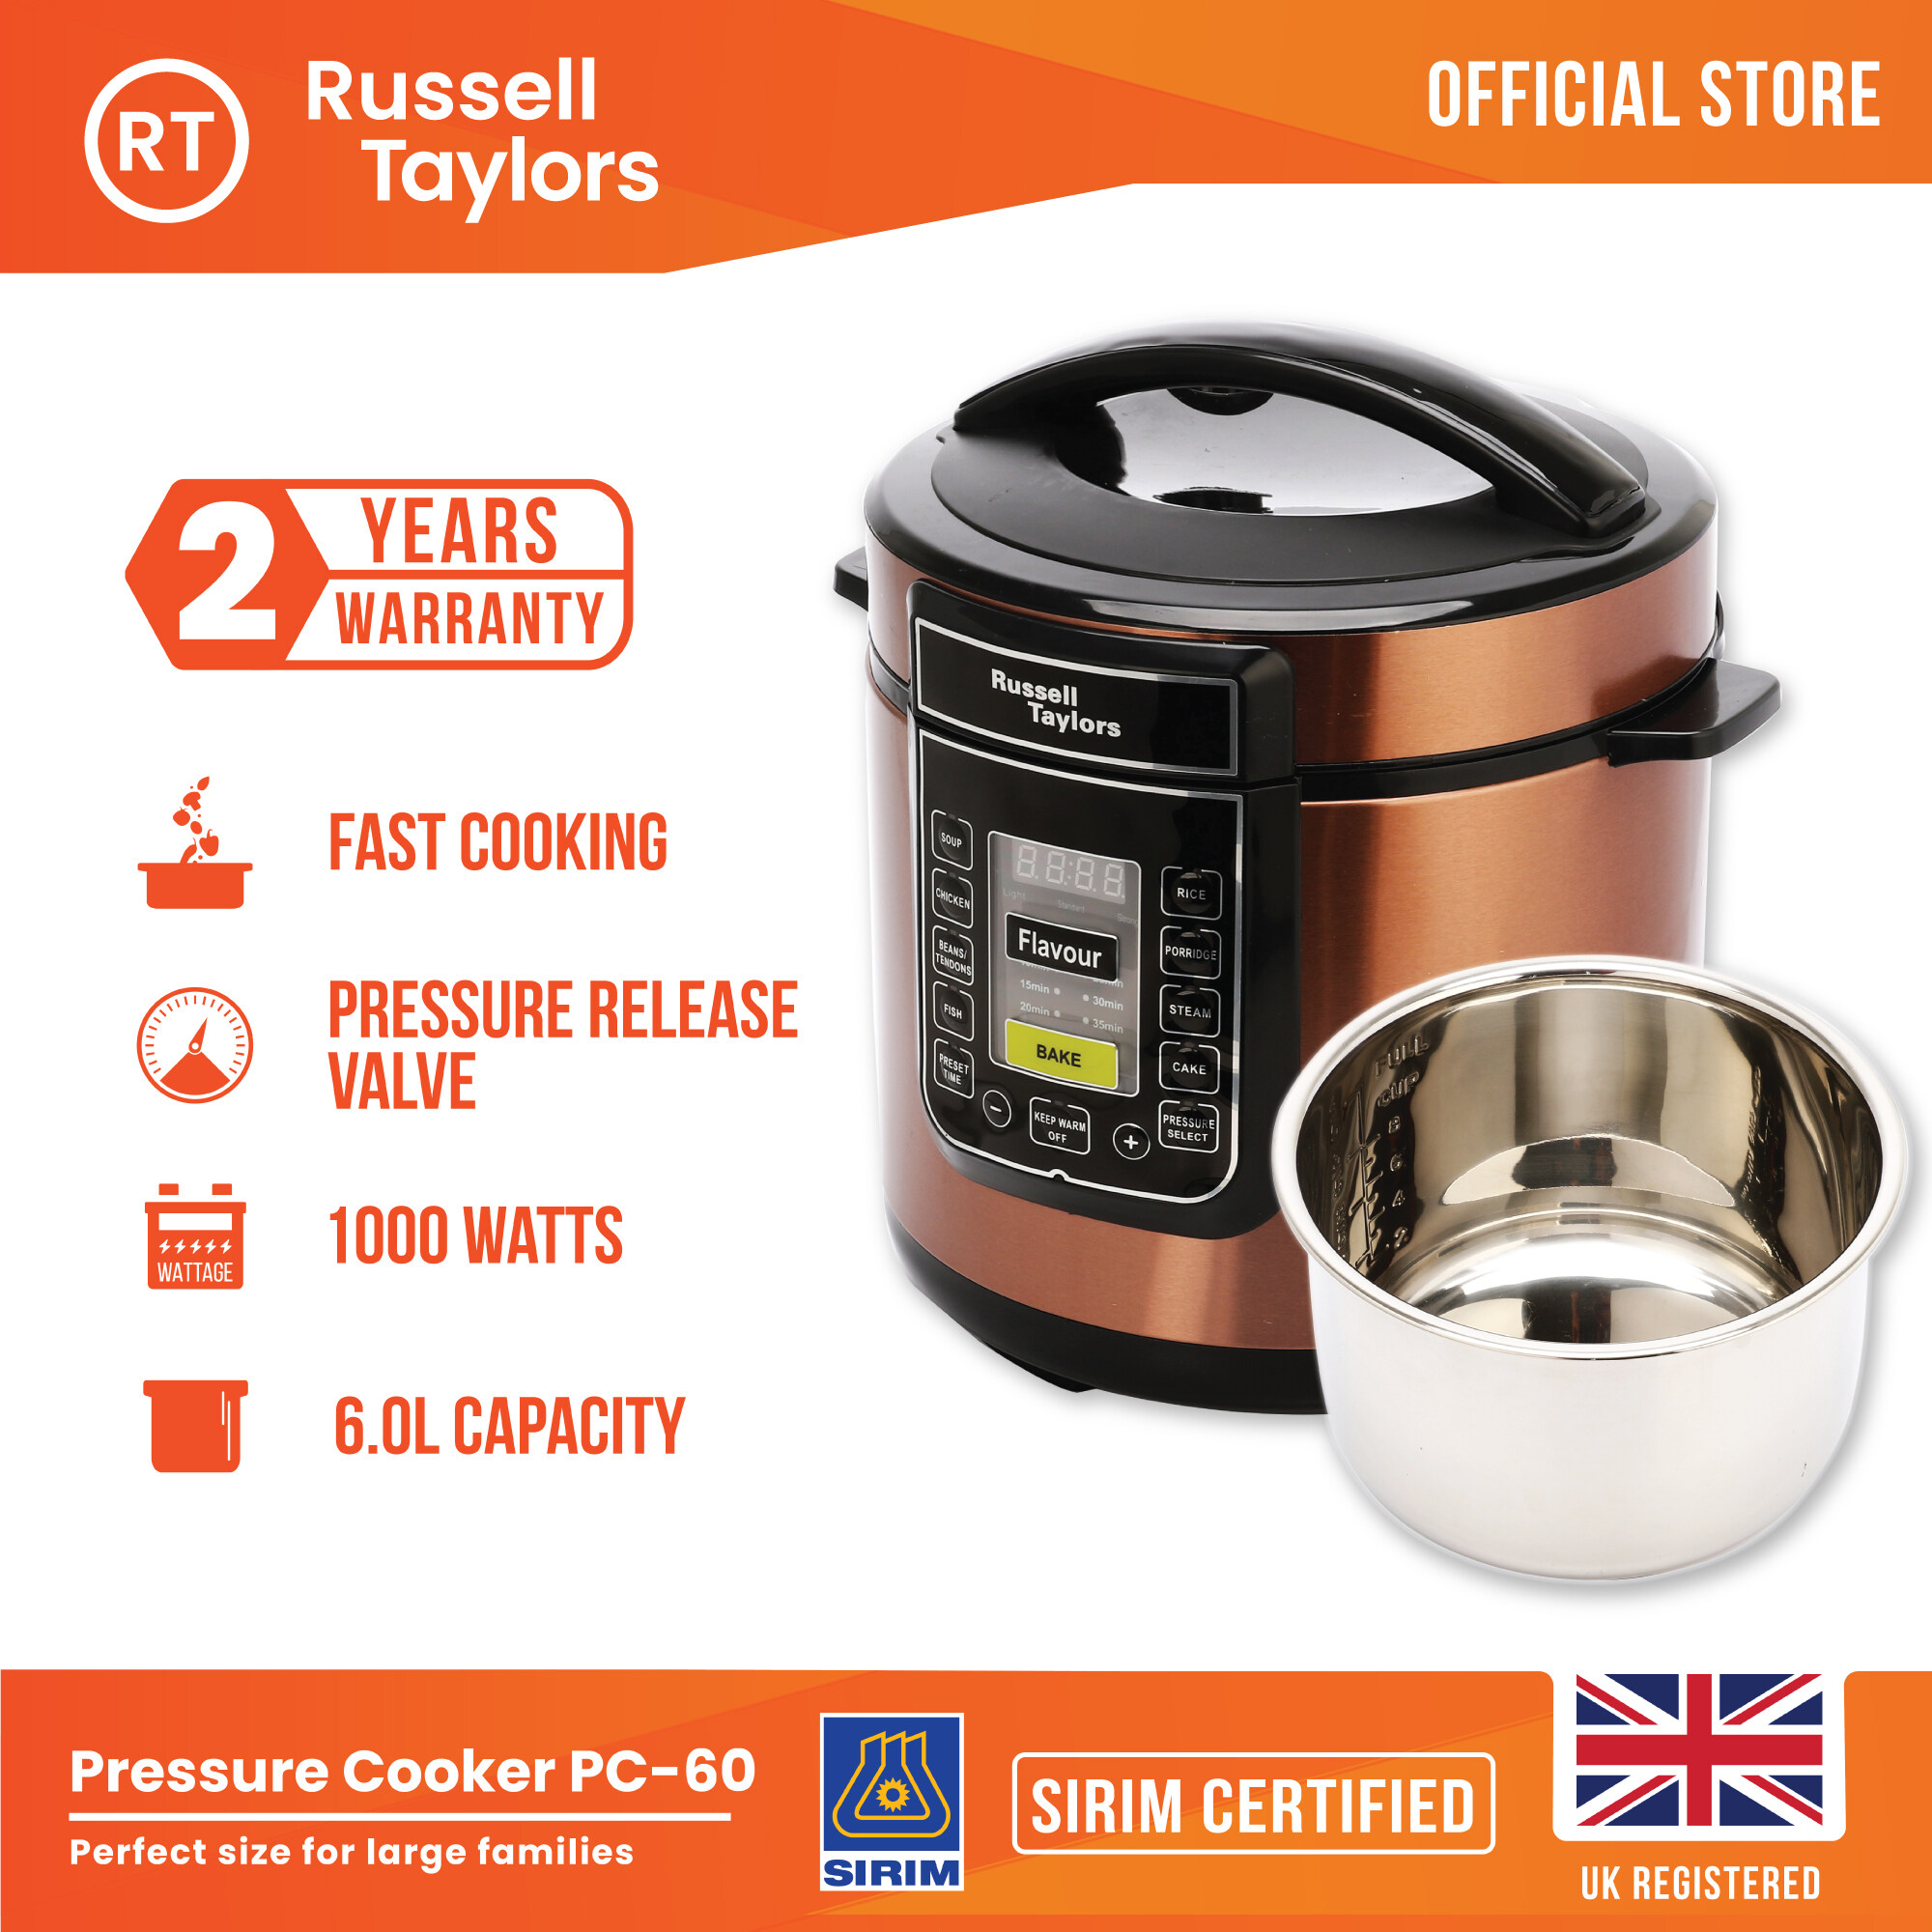 Russell Taylors 6L Electric Pressure Cooker PC-60, stainless steel pot - Multi Cooker Rice Cooker